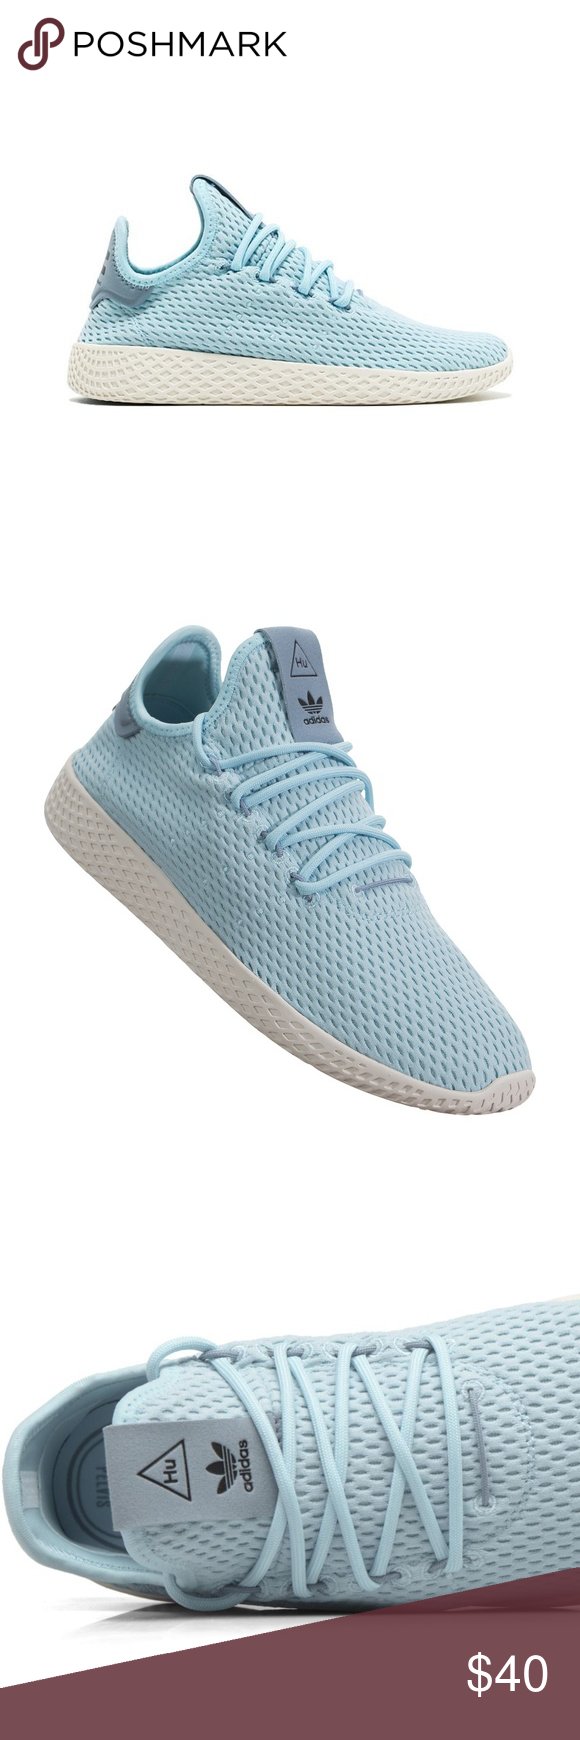 d42aa0bfd2687 adidas Pharrell Williams Tennis HU (Kids) Style  cp9802 Blue Adidas teamed  up with